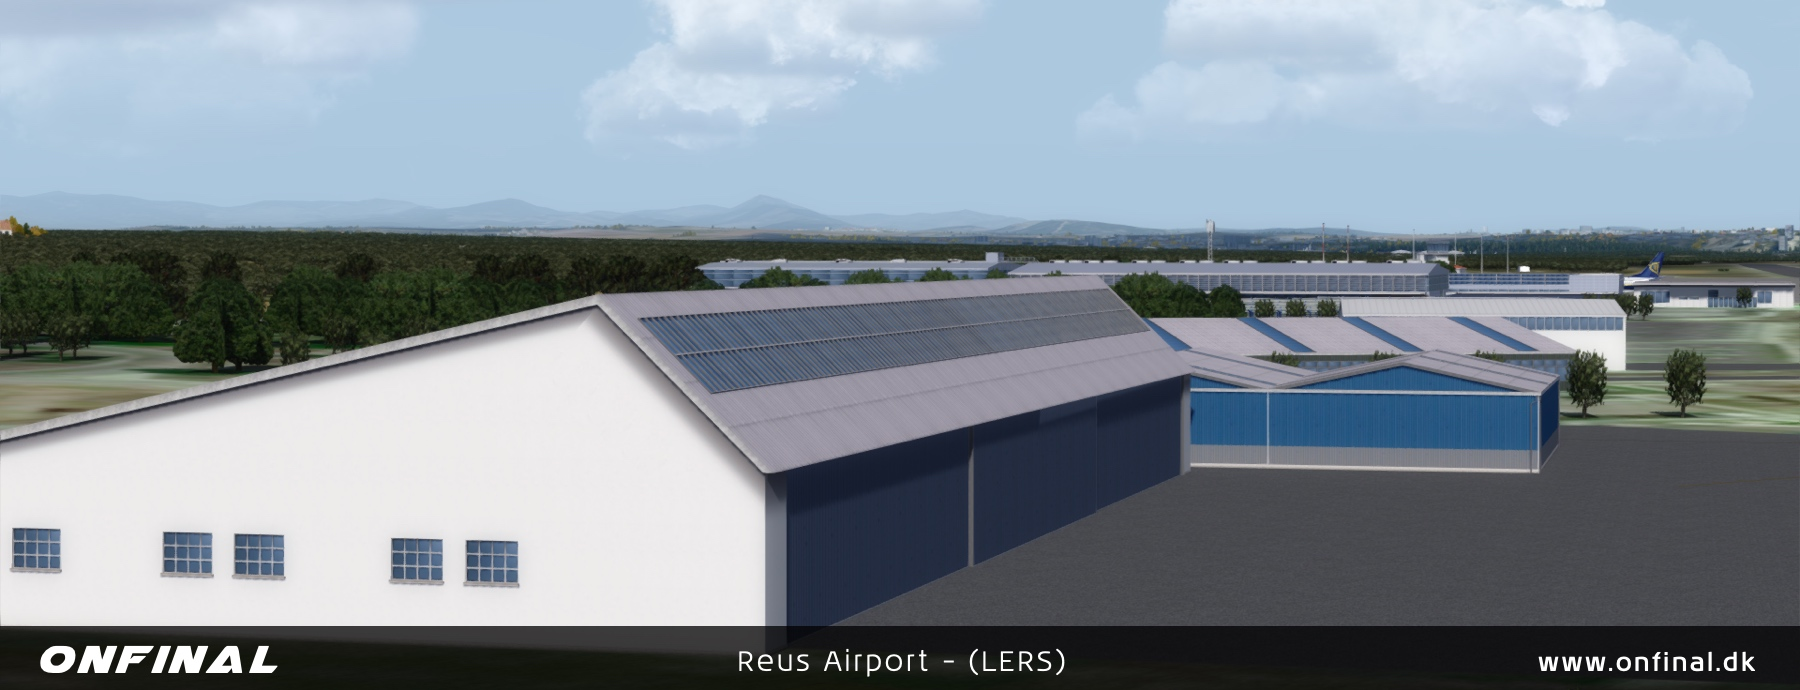 Reus Airport LERS Overview Night P3D Scenery